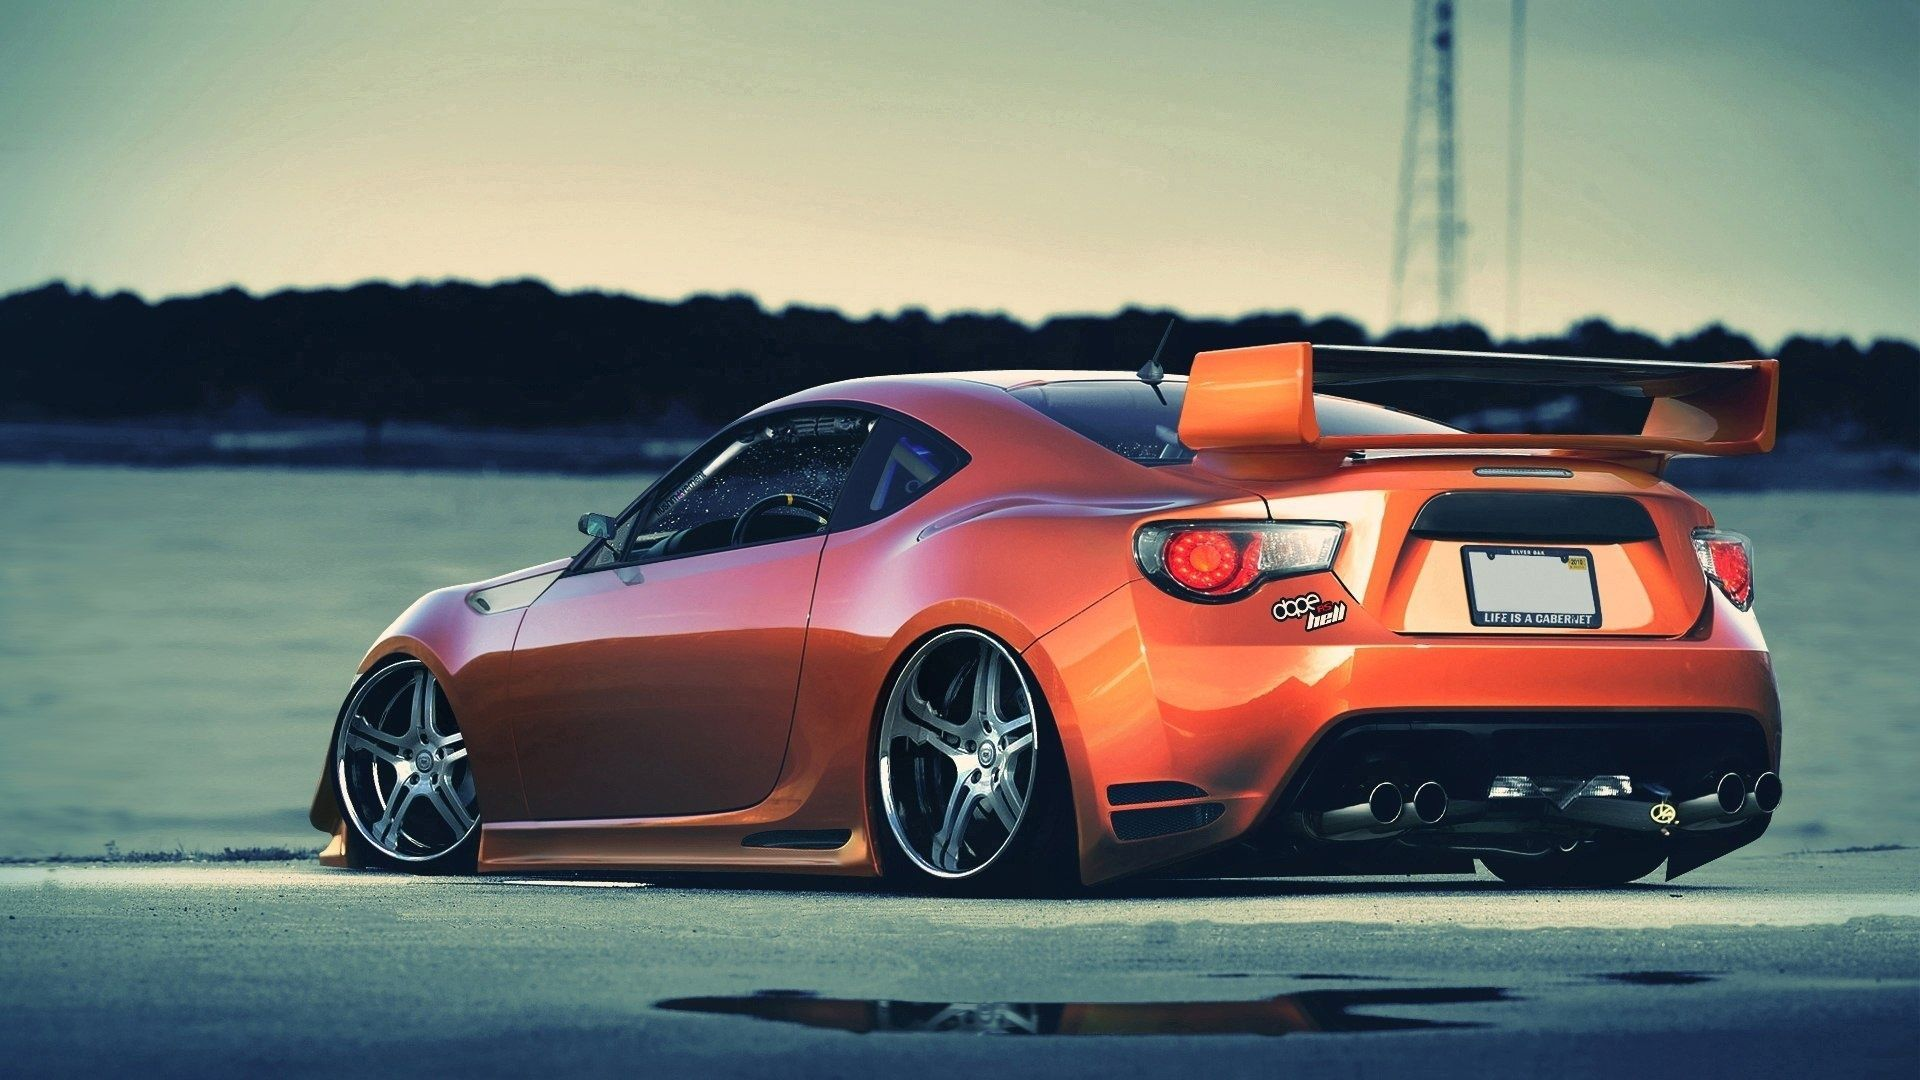 Tuned Cars wallpapers 9 Tuner cars, Car wallpapers